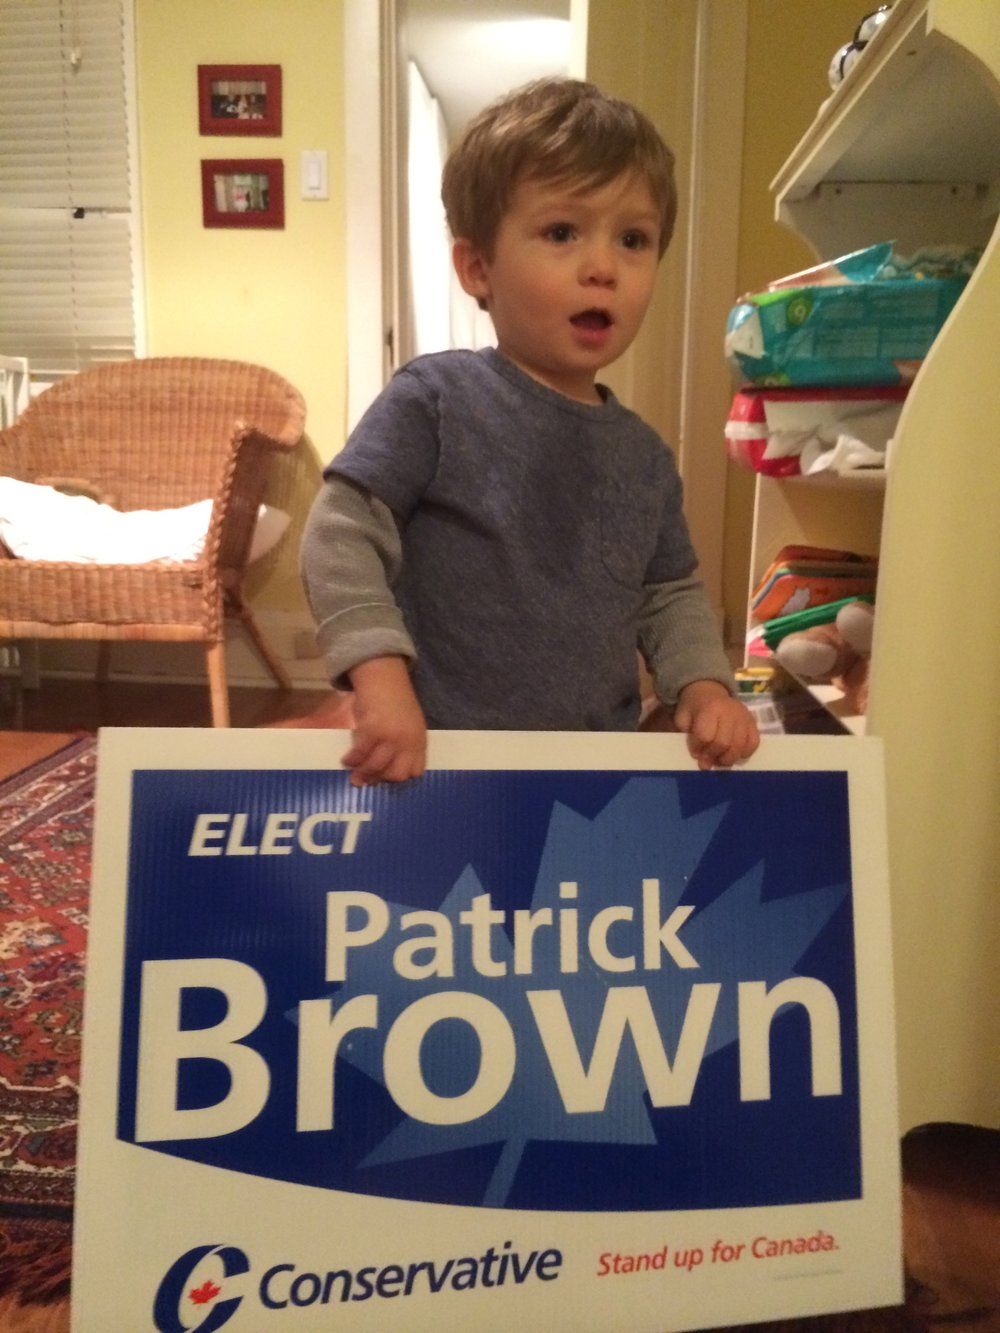 Nephew Colton was campaigning for Patrick